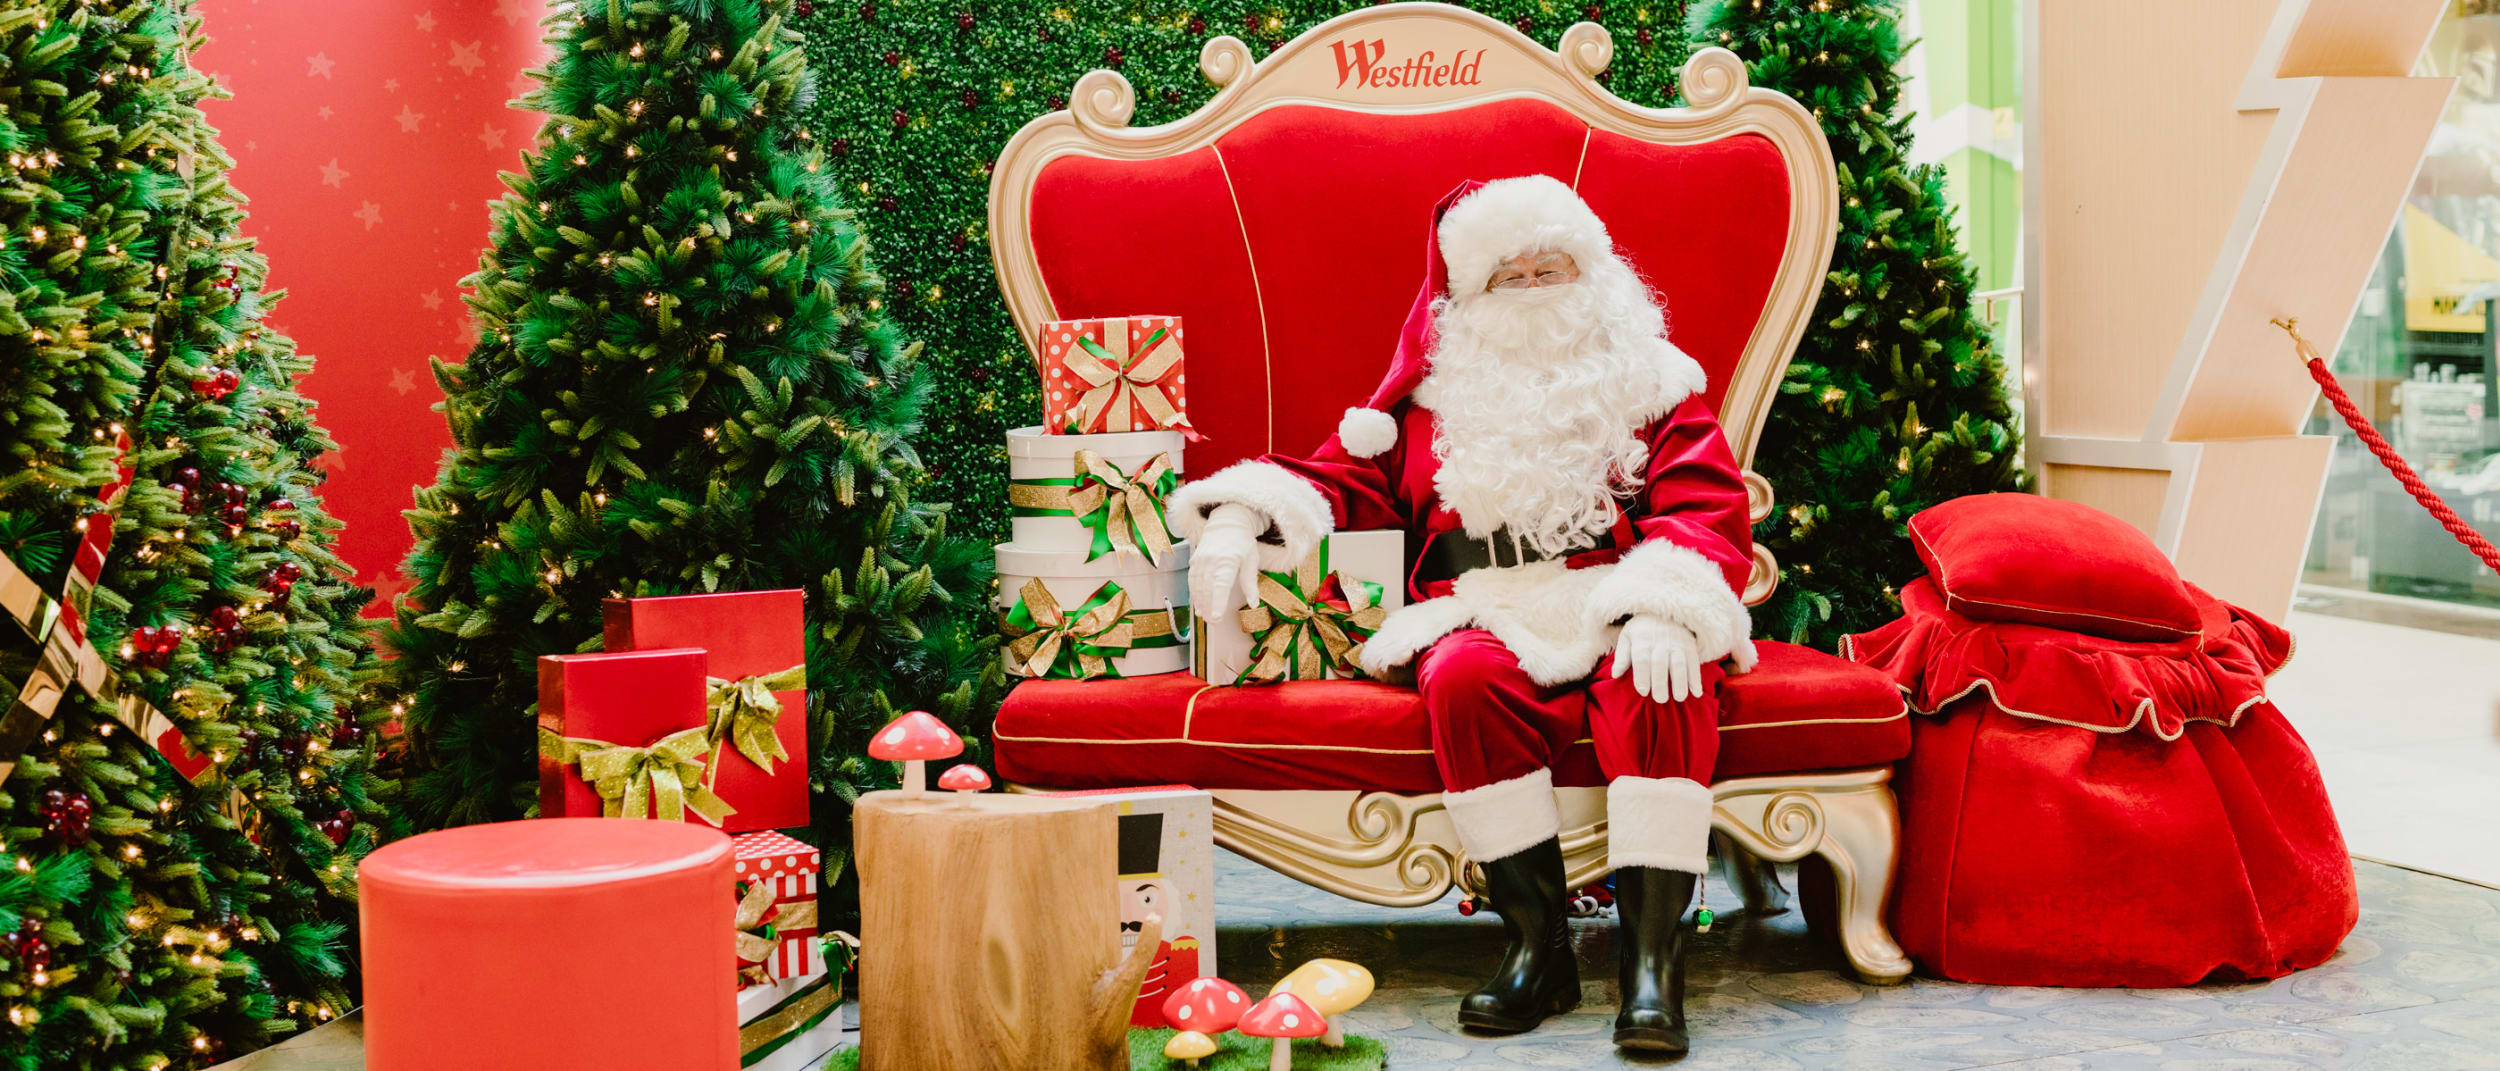 Get a bonus digital Santa photo with the Westfield Plus App